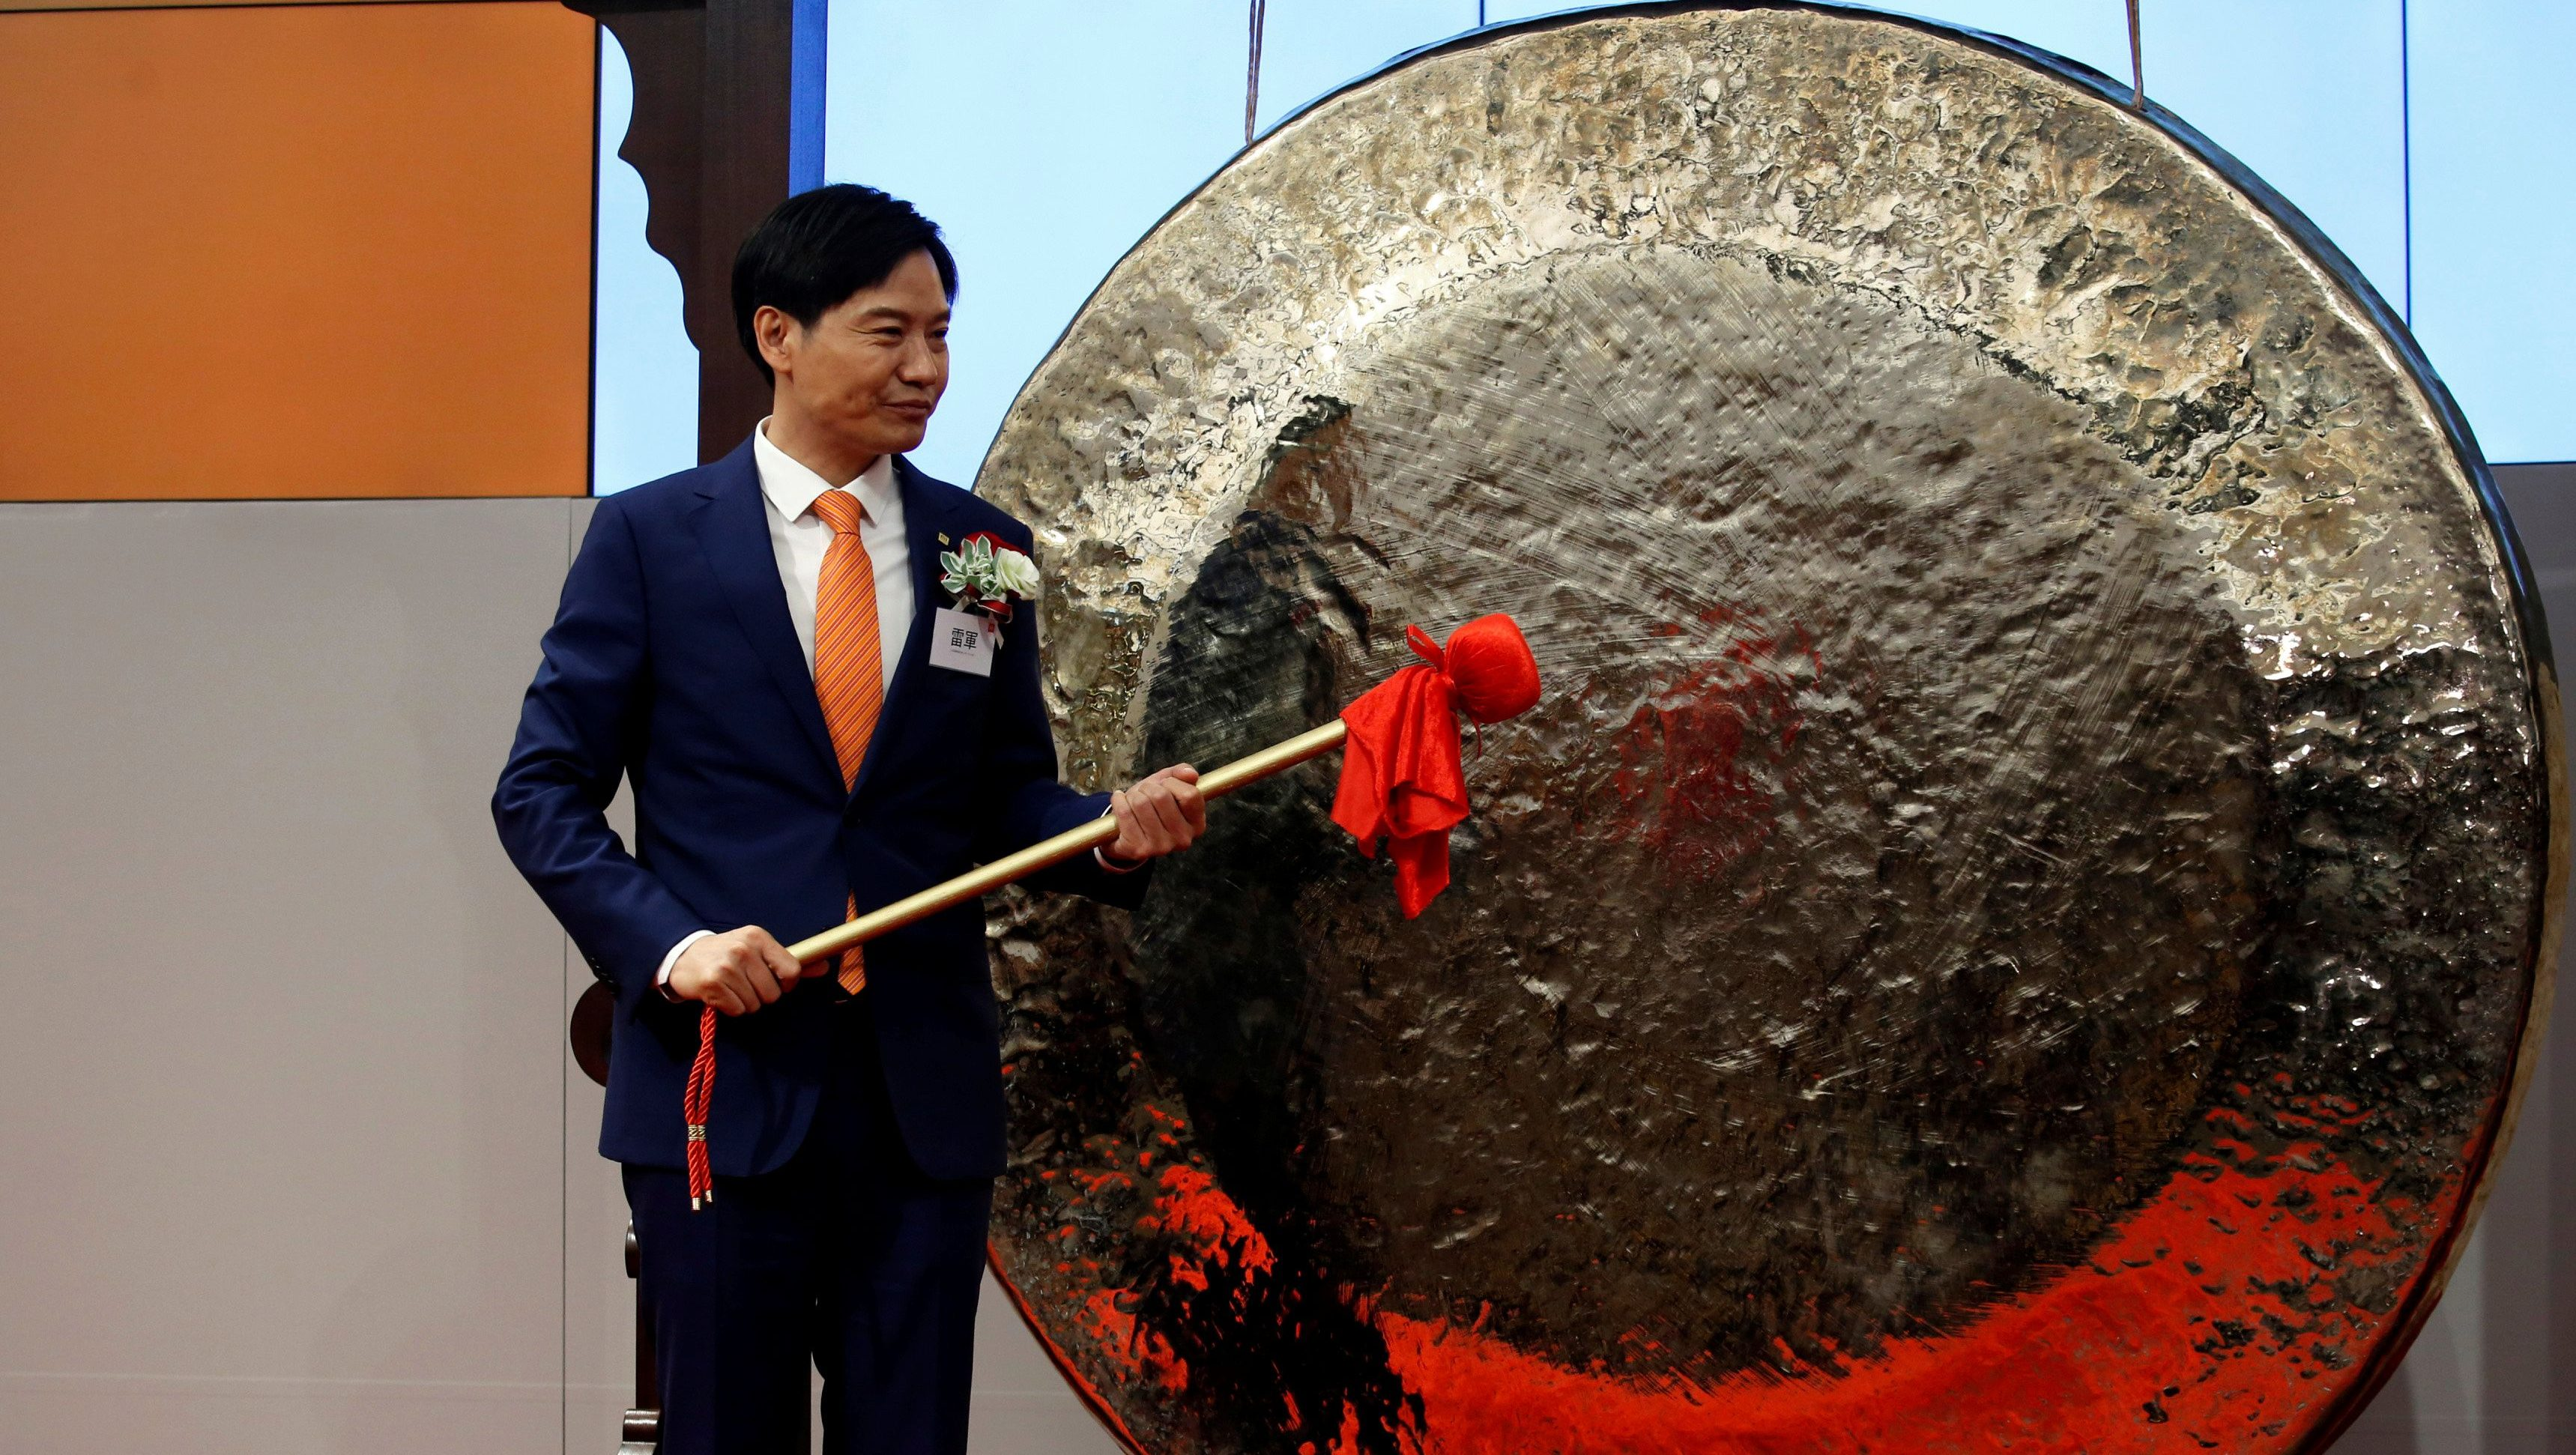 Xiaomi founder, Chairman and CEO Lei Jun prepares to hit the gong during the listing of the company at the Hong Kong Exchanges in Hong Kong, China July 9, 2018.   REUTERS/Bobby Yip - RC1DEDC7B5D0